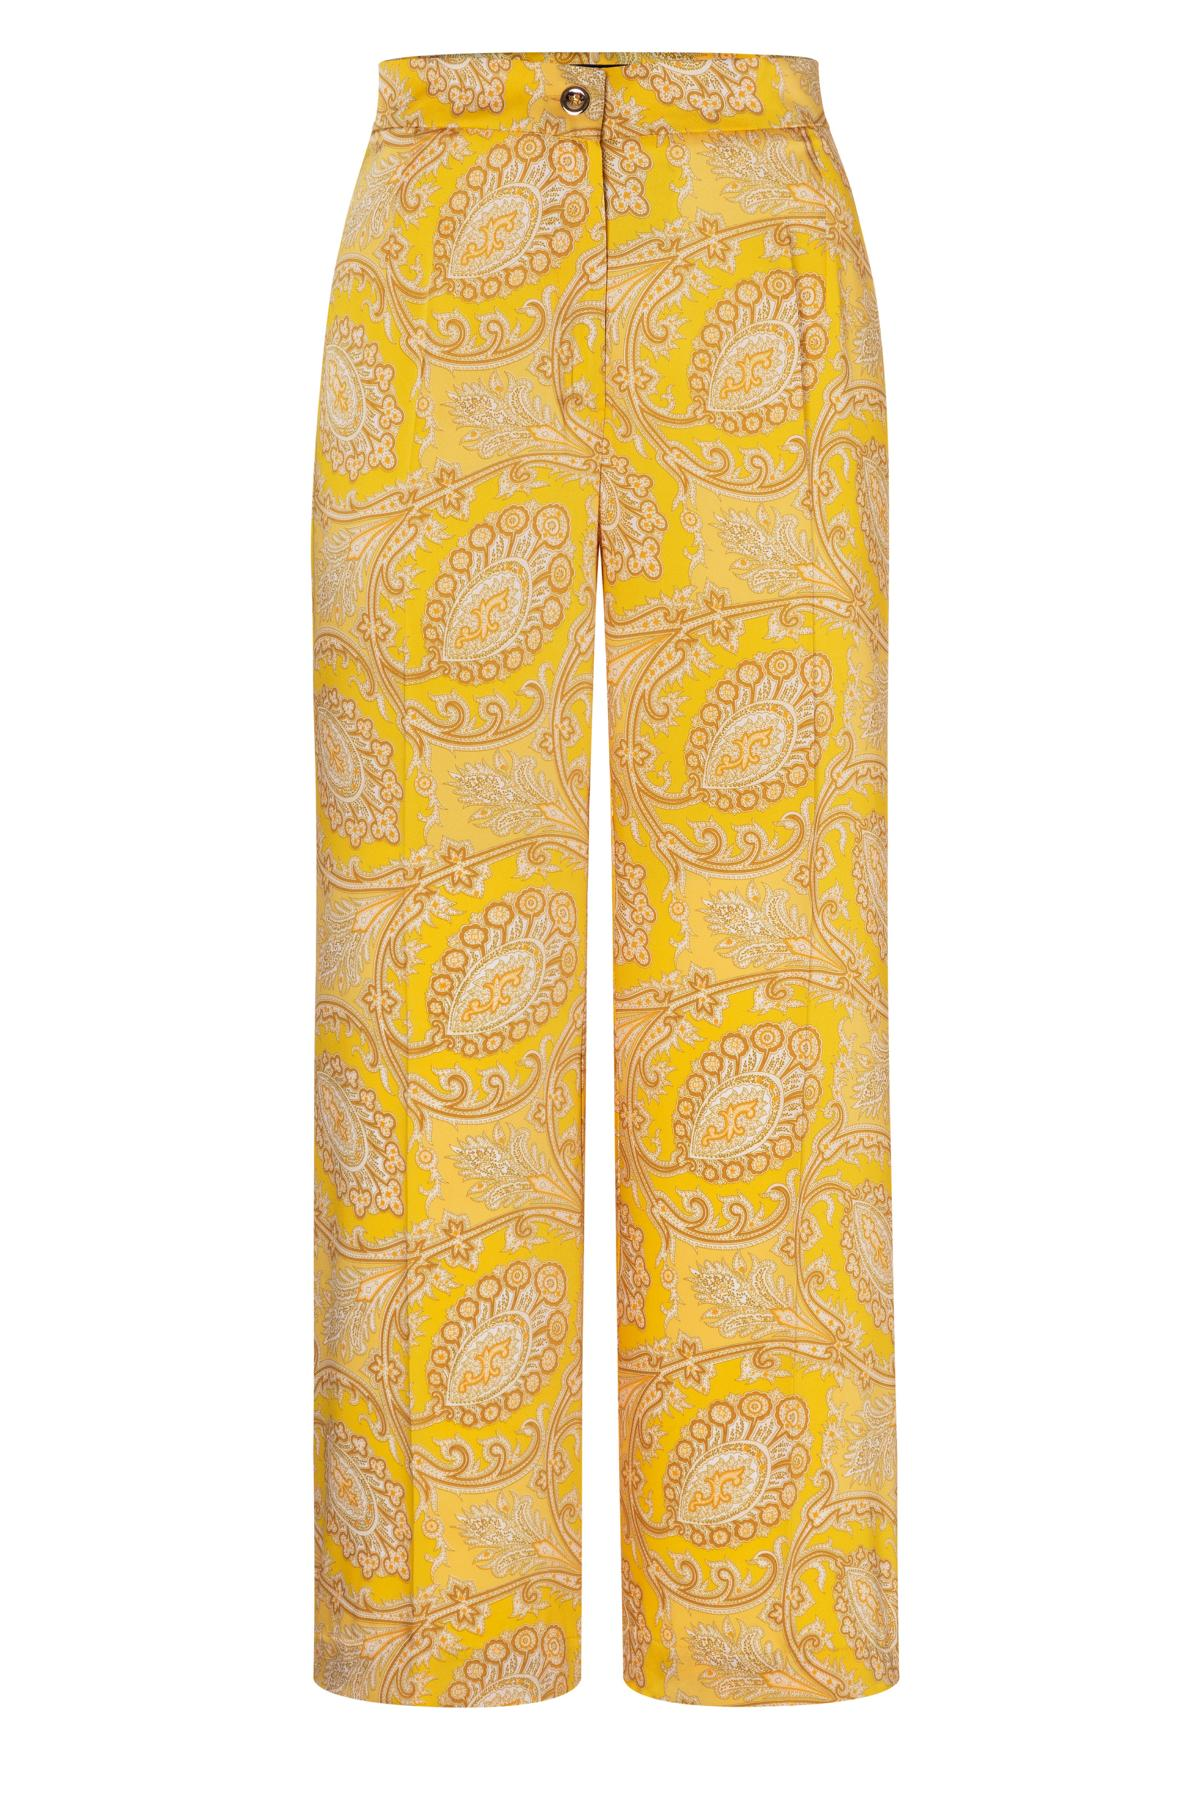 Ana Alcazar Cropped Pant Tefrosa Yellow